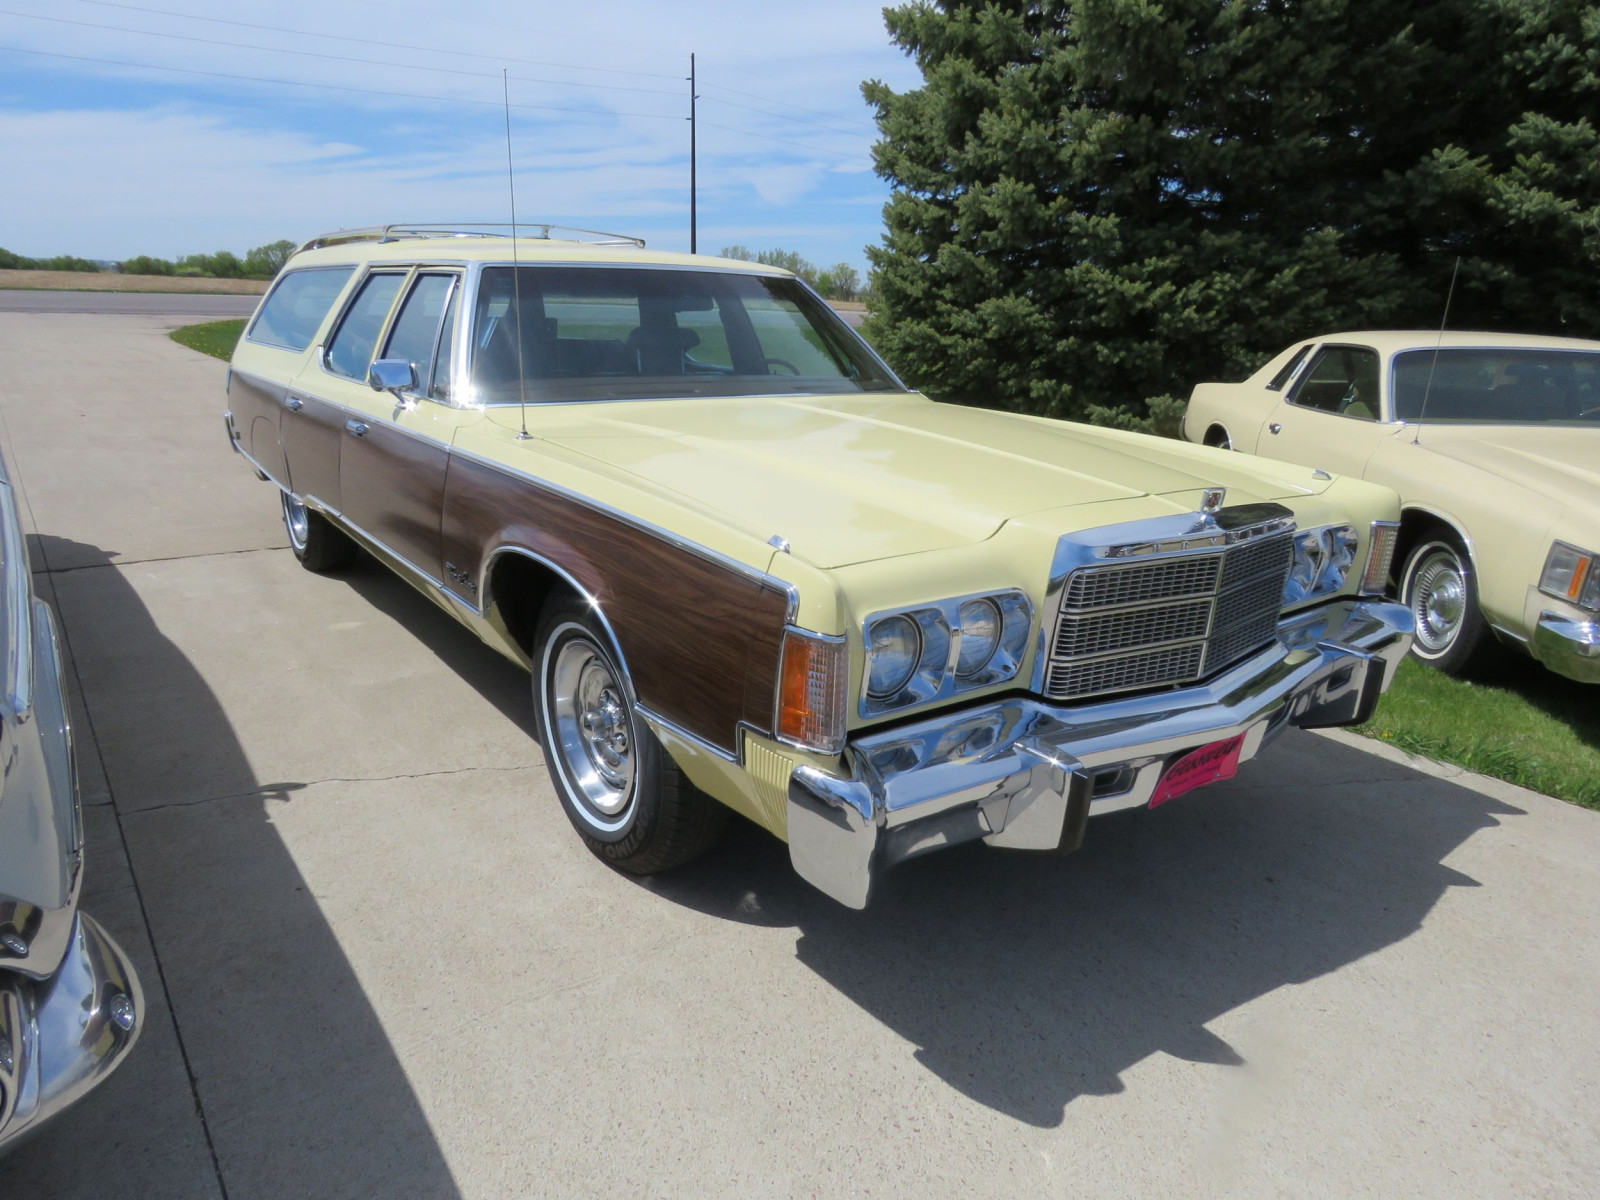 1977 Chrysler Town & Country Wagon - Image 3